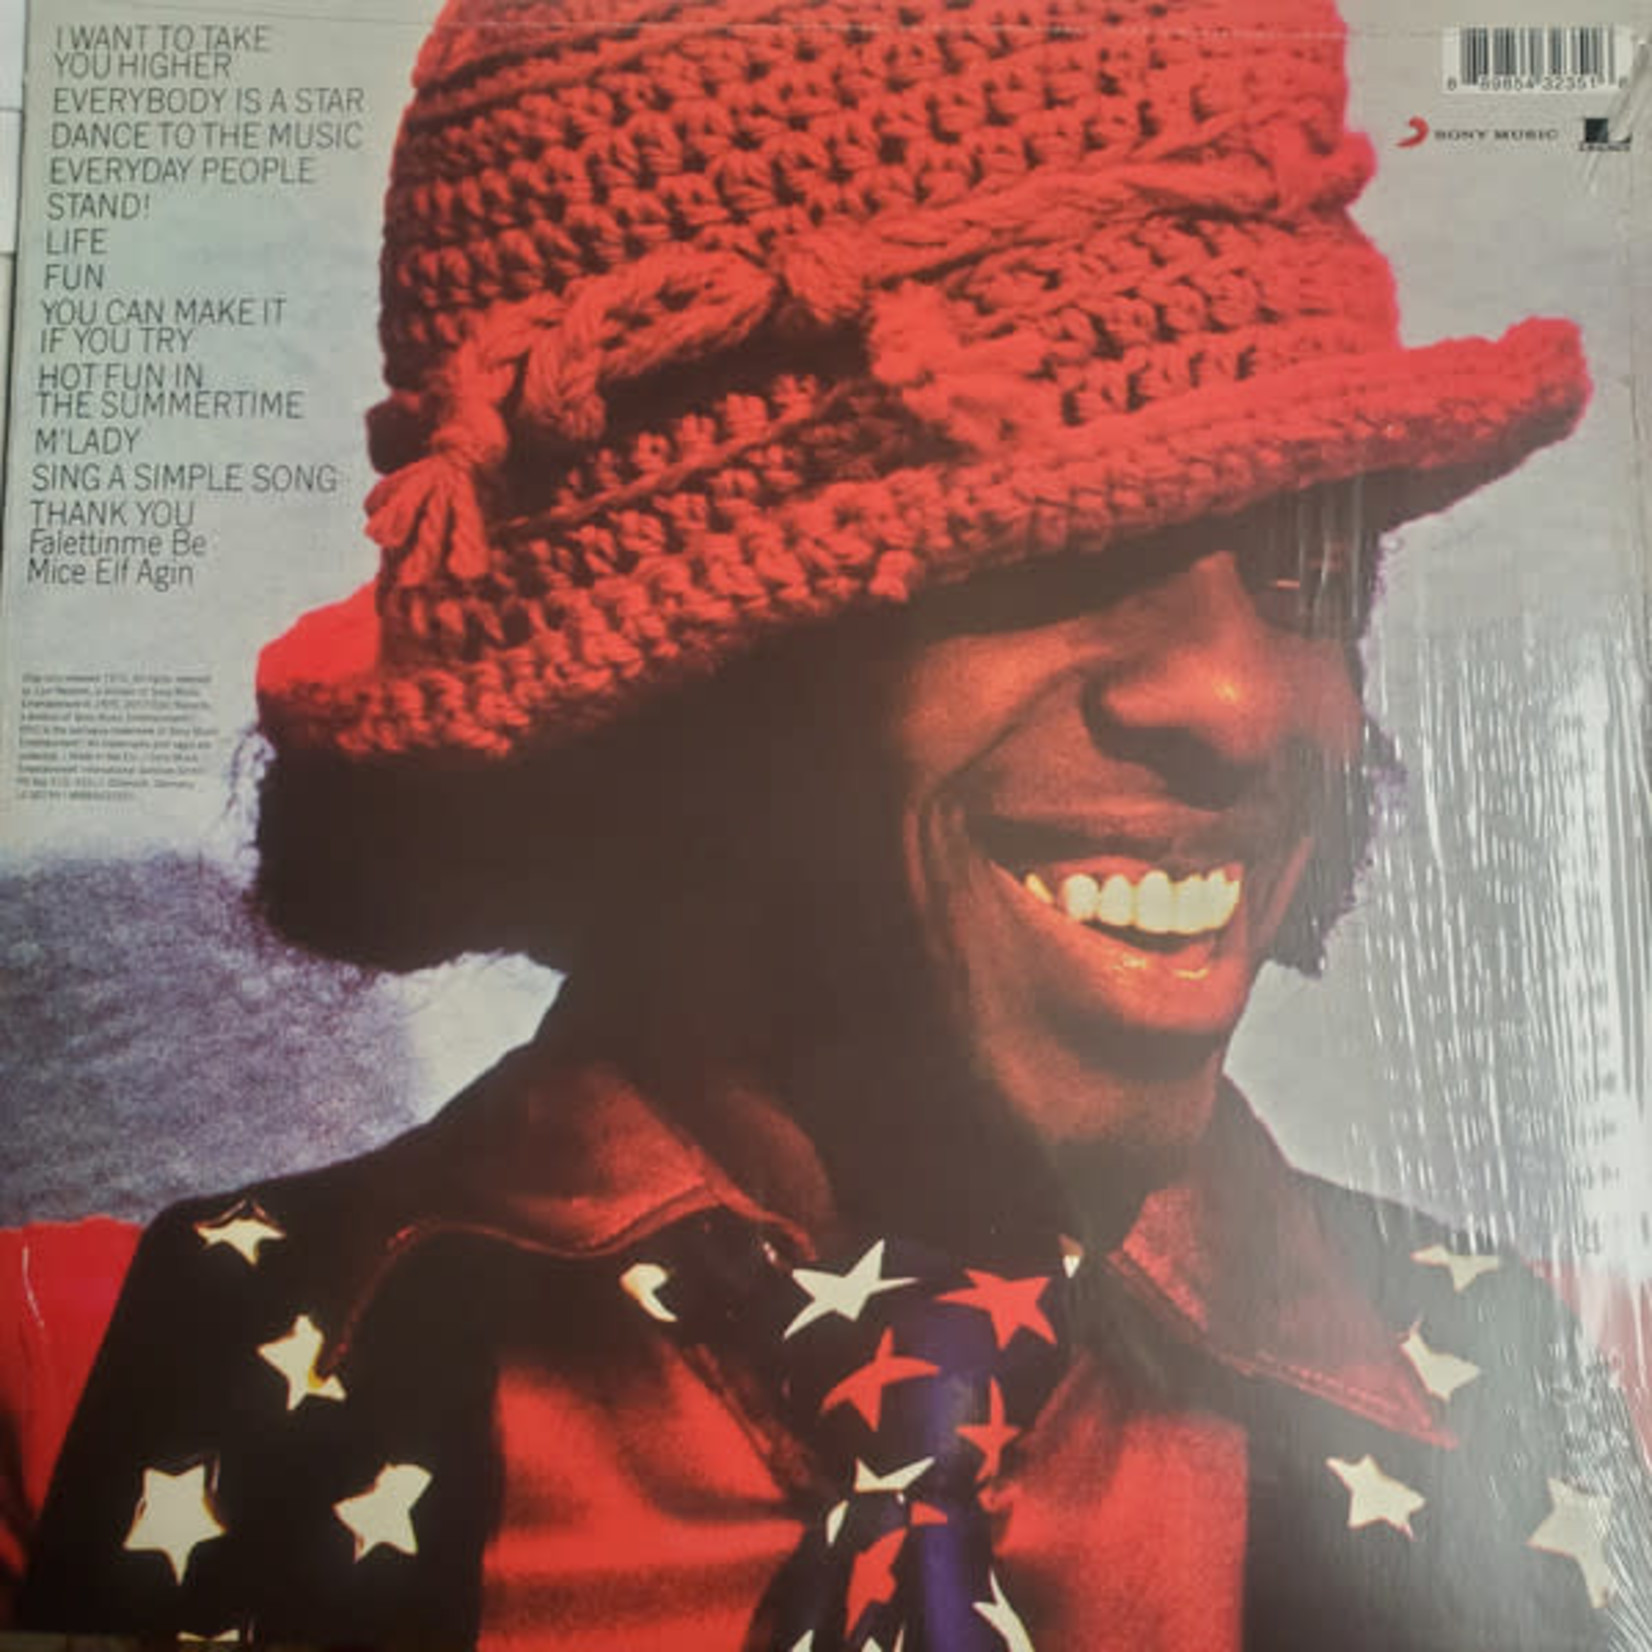 SLY & THE FAMILY STONE GREATEST HITS 1970 LP